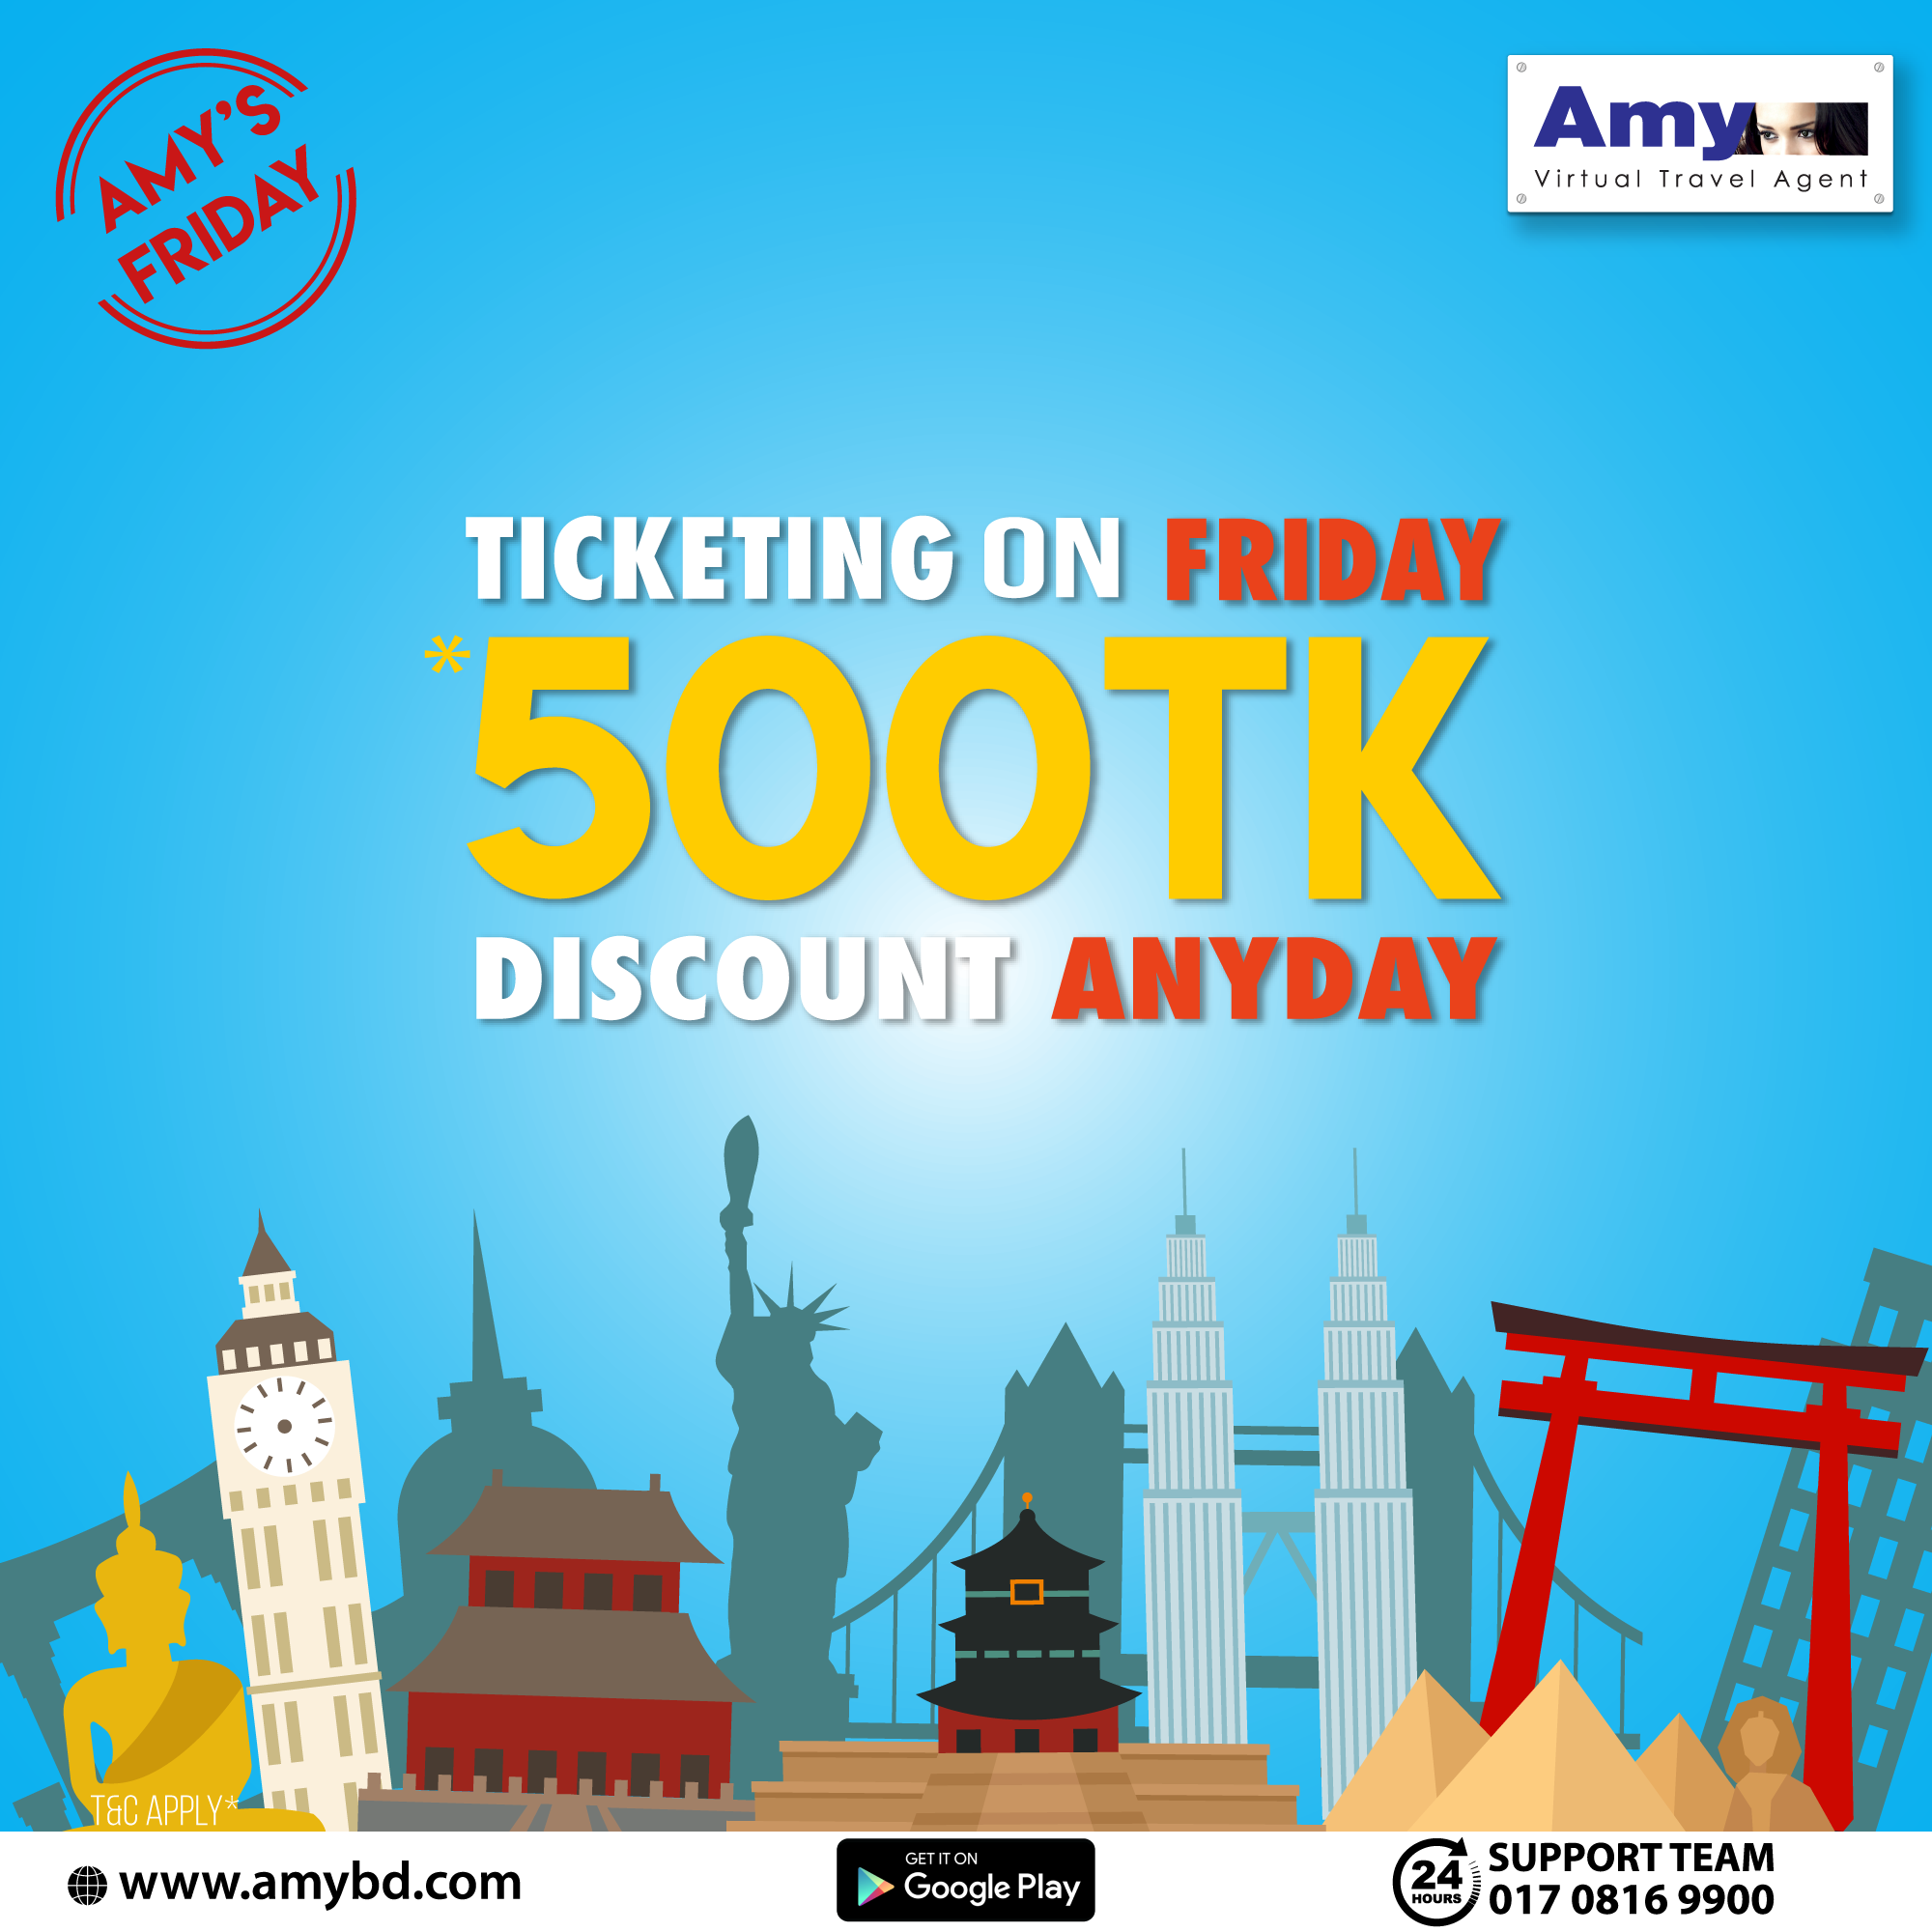 Exciting Amy's Friday offer is here! টাকা বাঁচানো হোক এখন